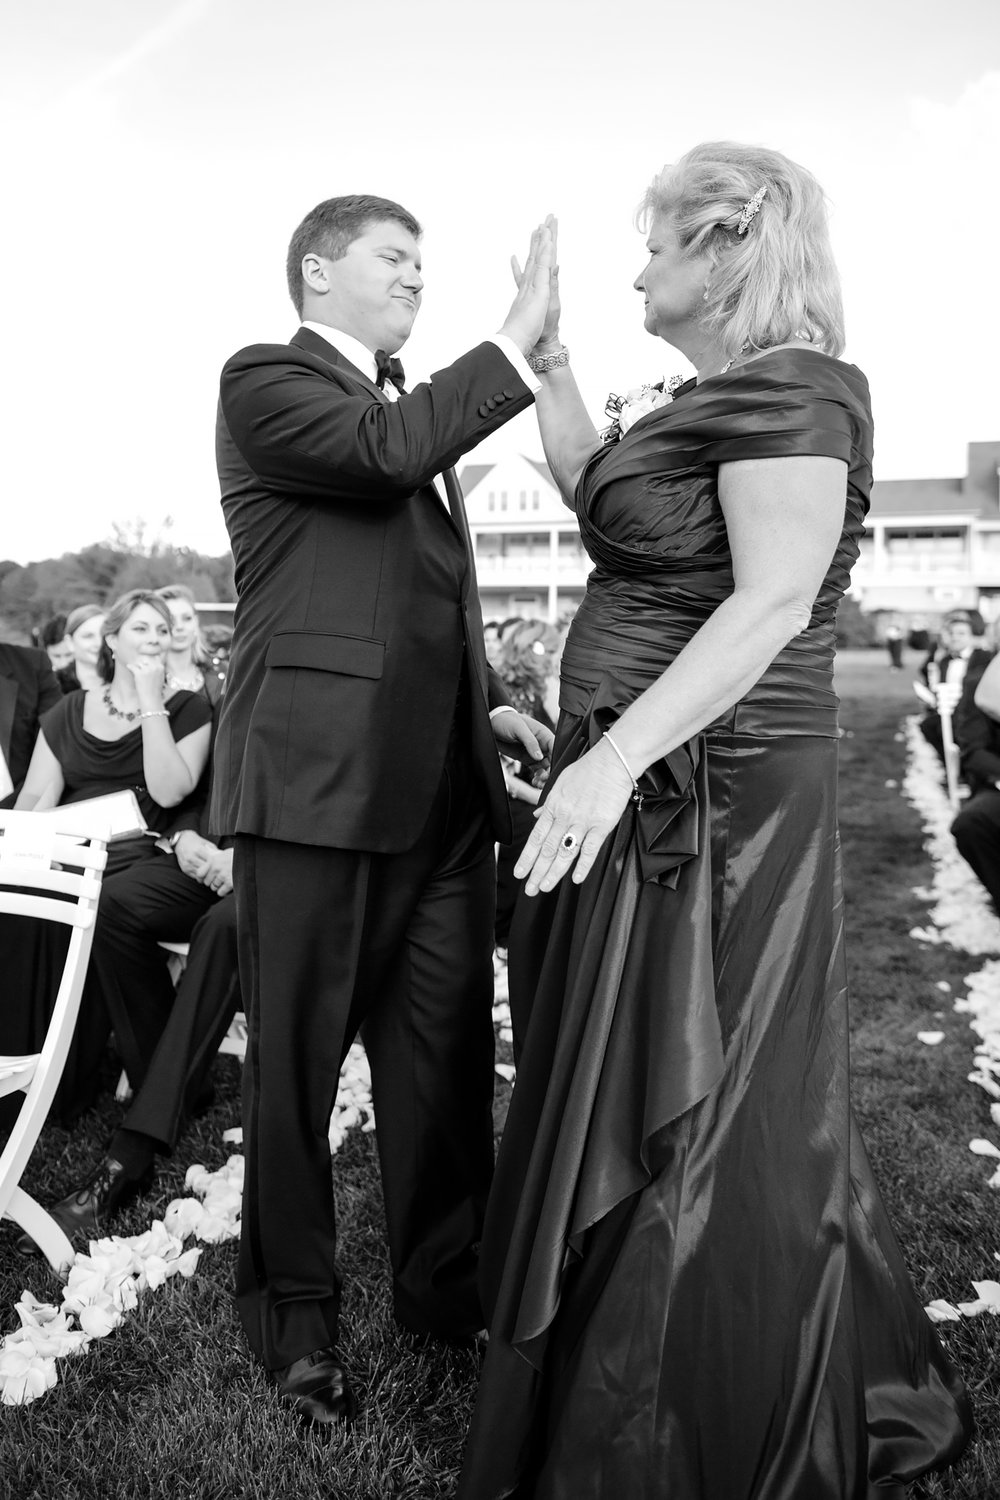 Dan gives is mother a high five after he walks him down the aisle.